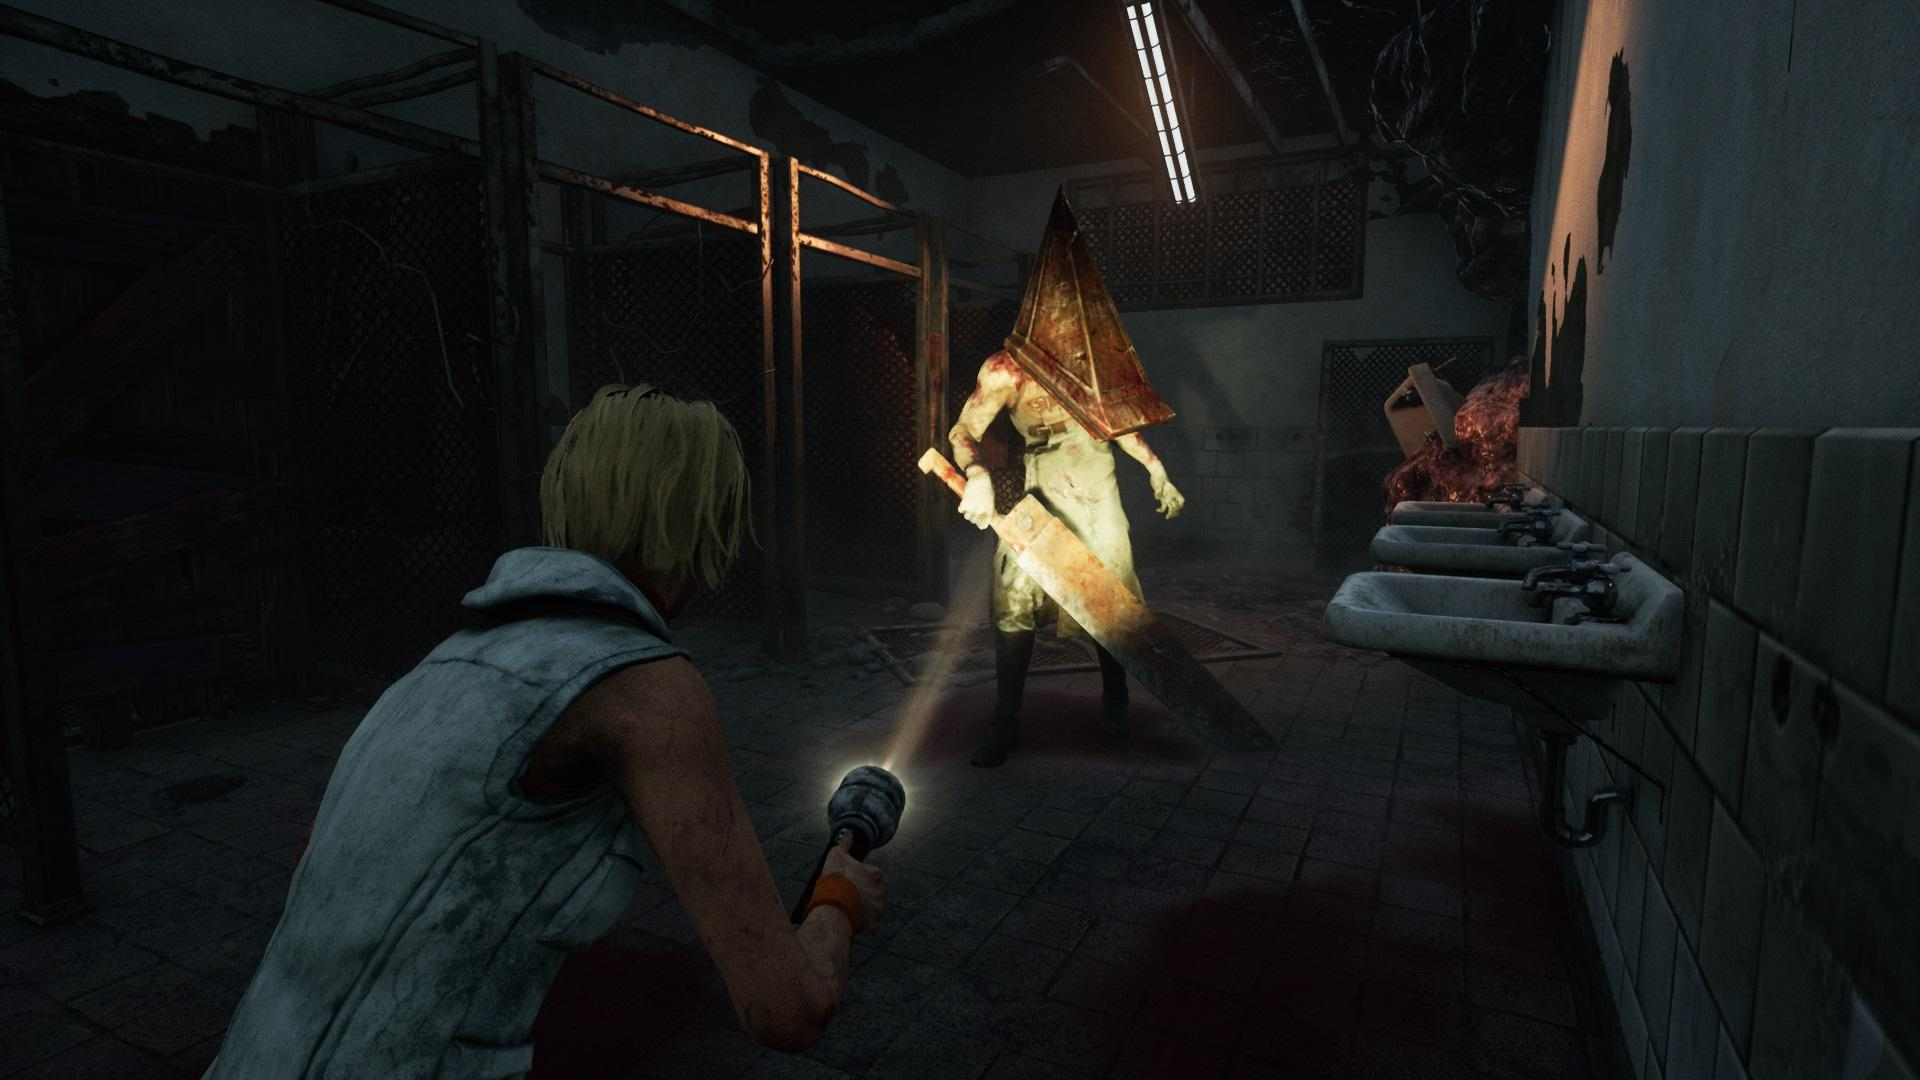 Dead by Daylight: Silent Hill is coming in June